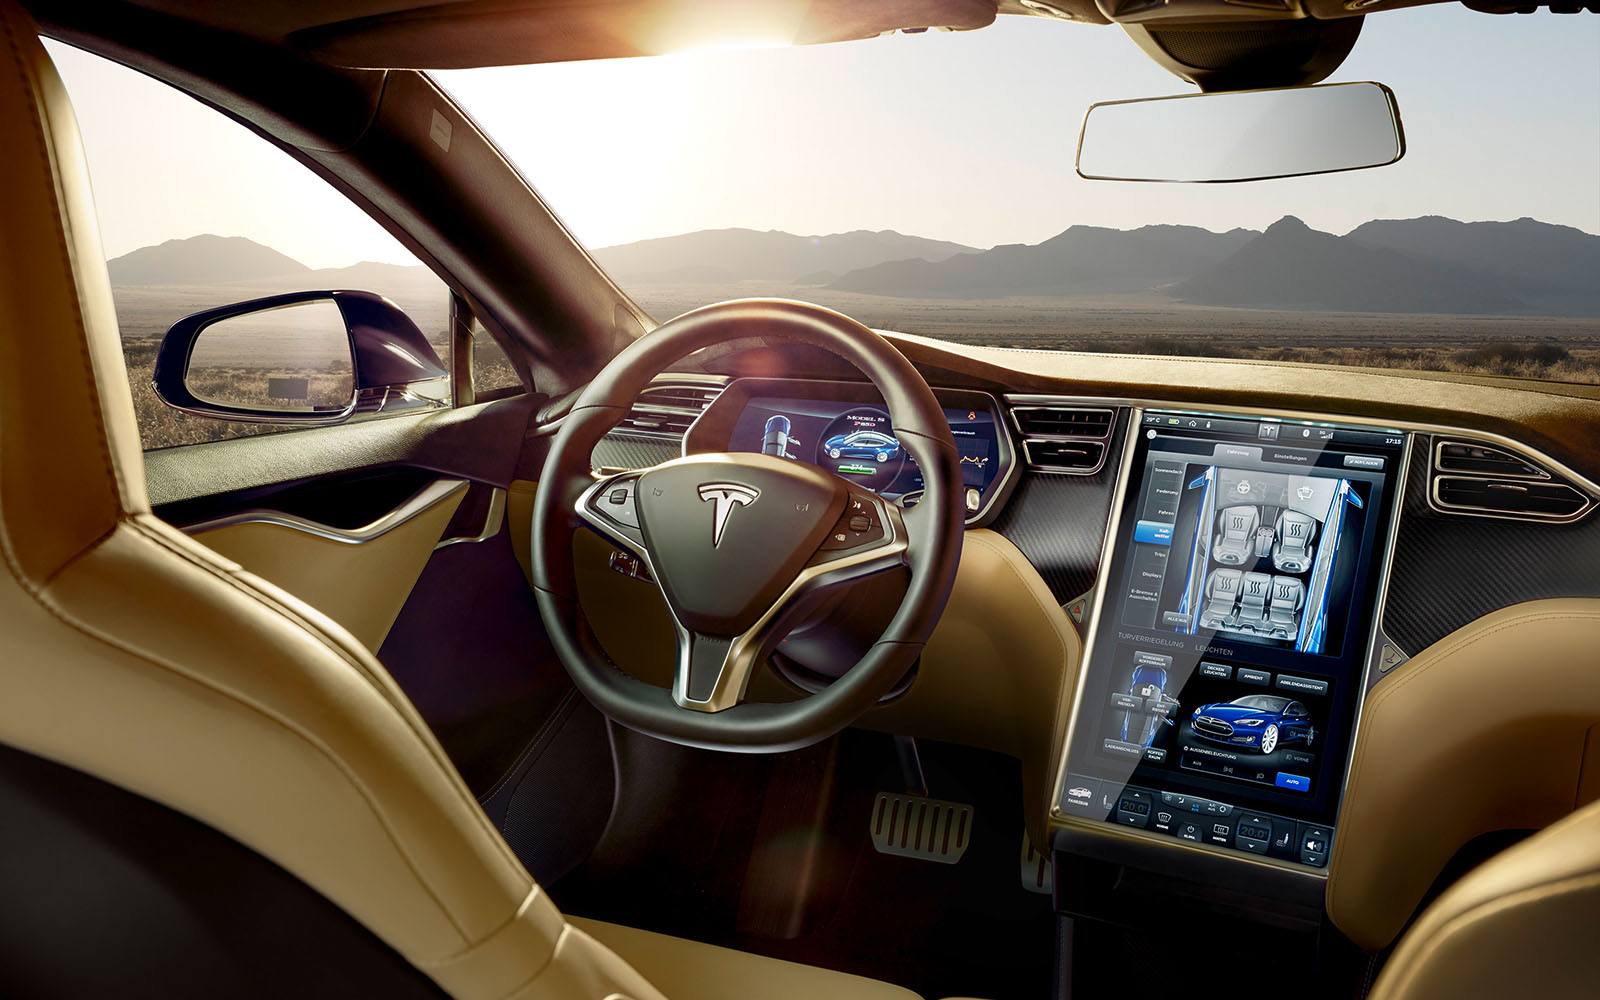 Tesla Model S Interior Ii Staudinger Franke Photography Post